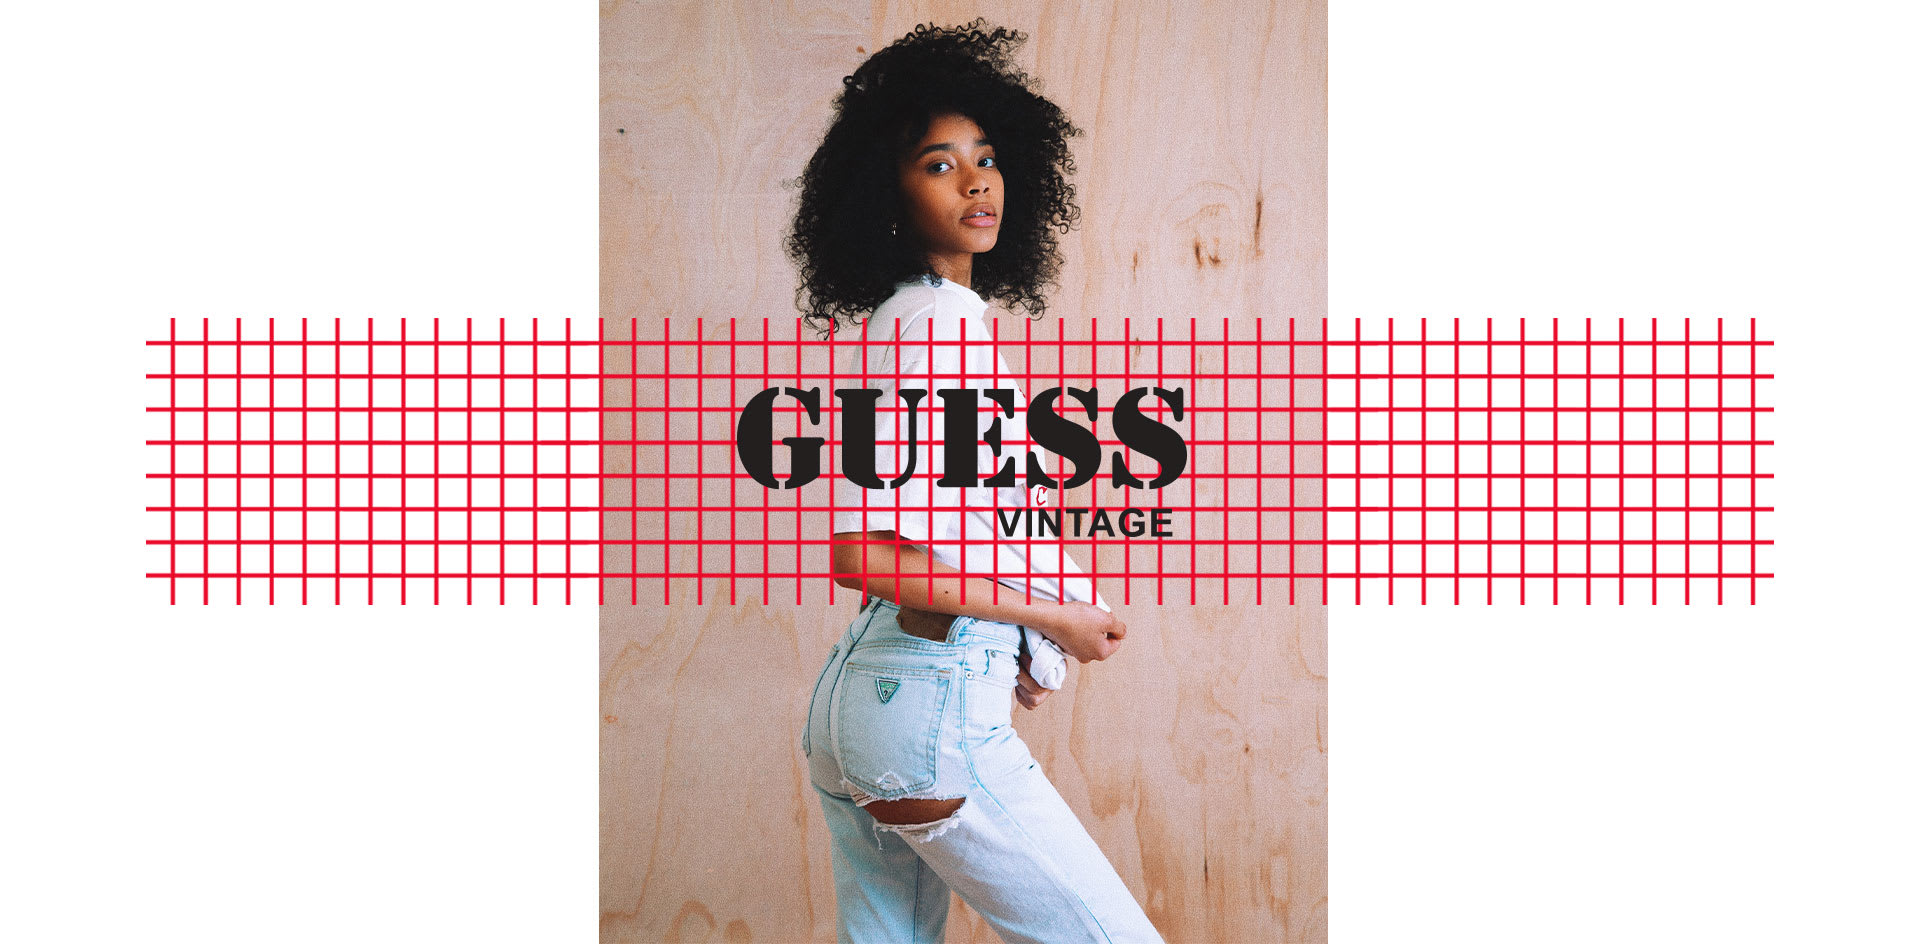 GUESS Vintage